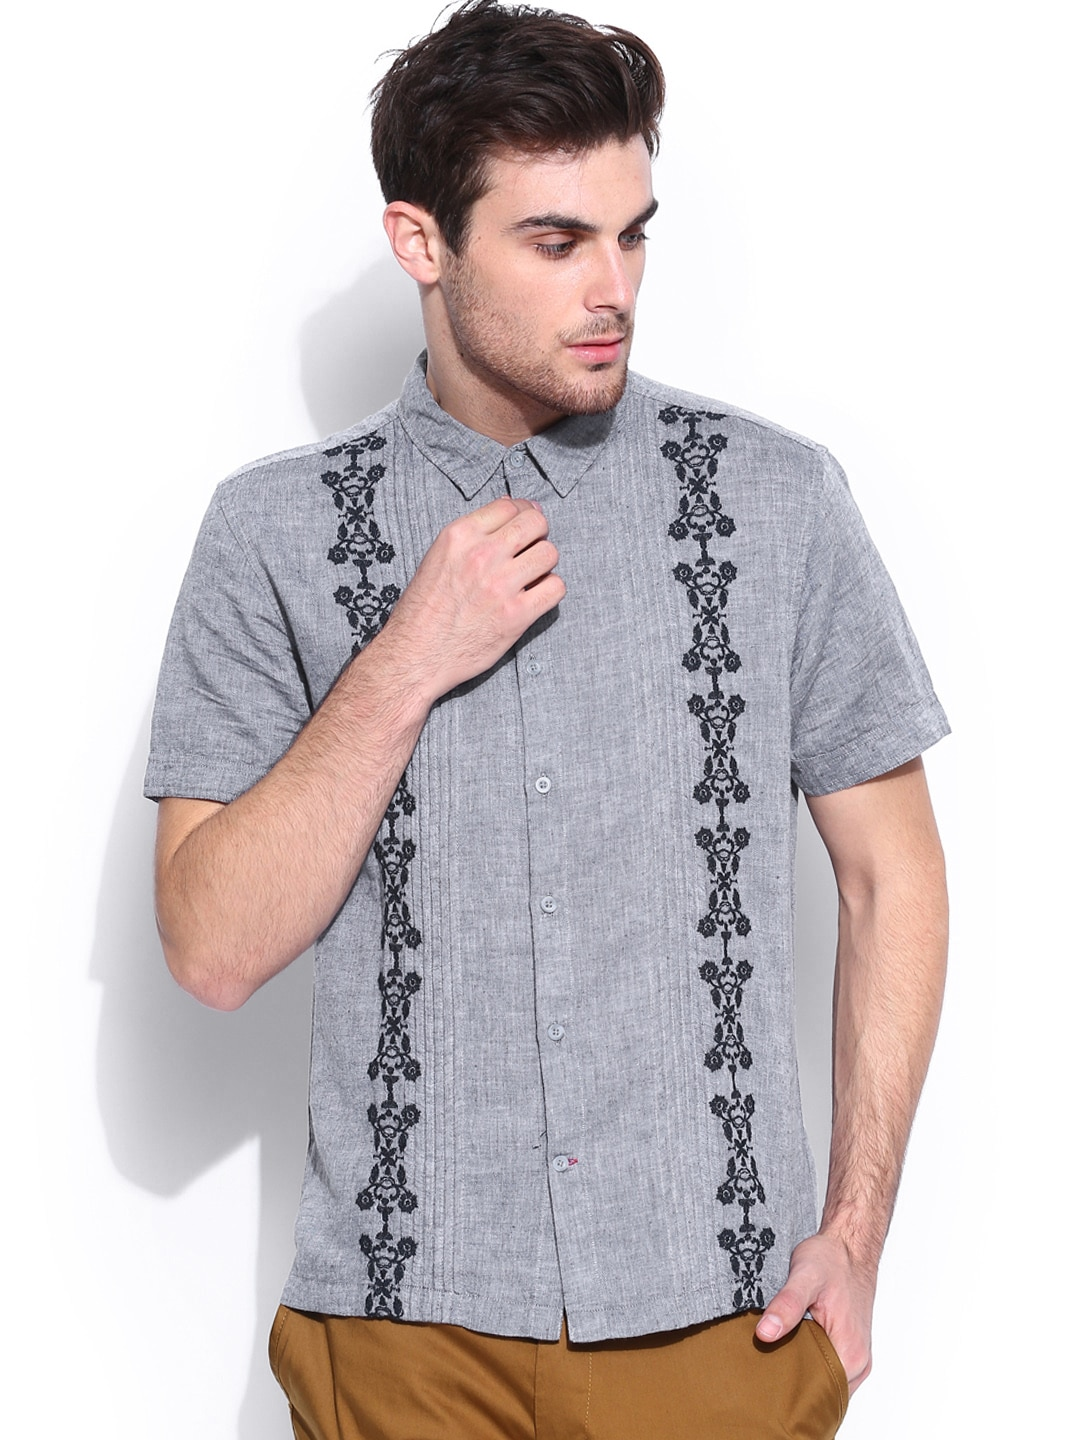 GUESS Grey Embroidered Linen Casual Shirt